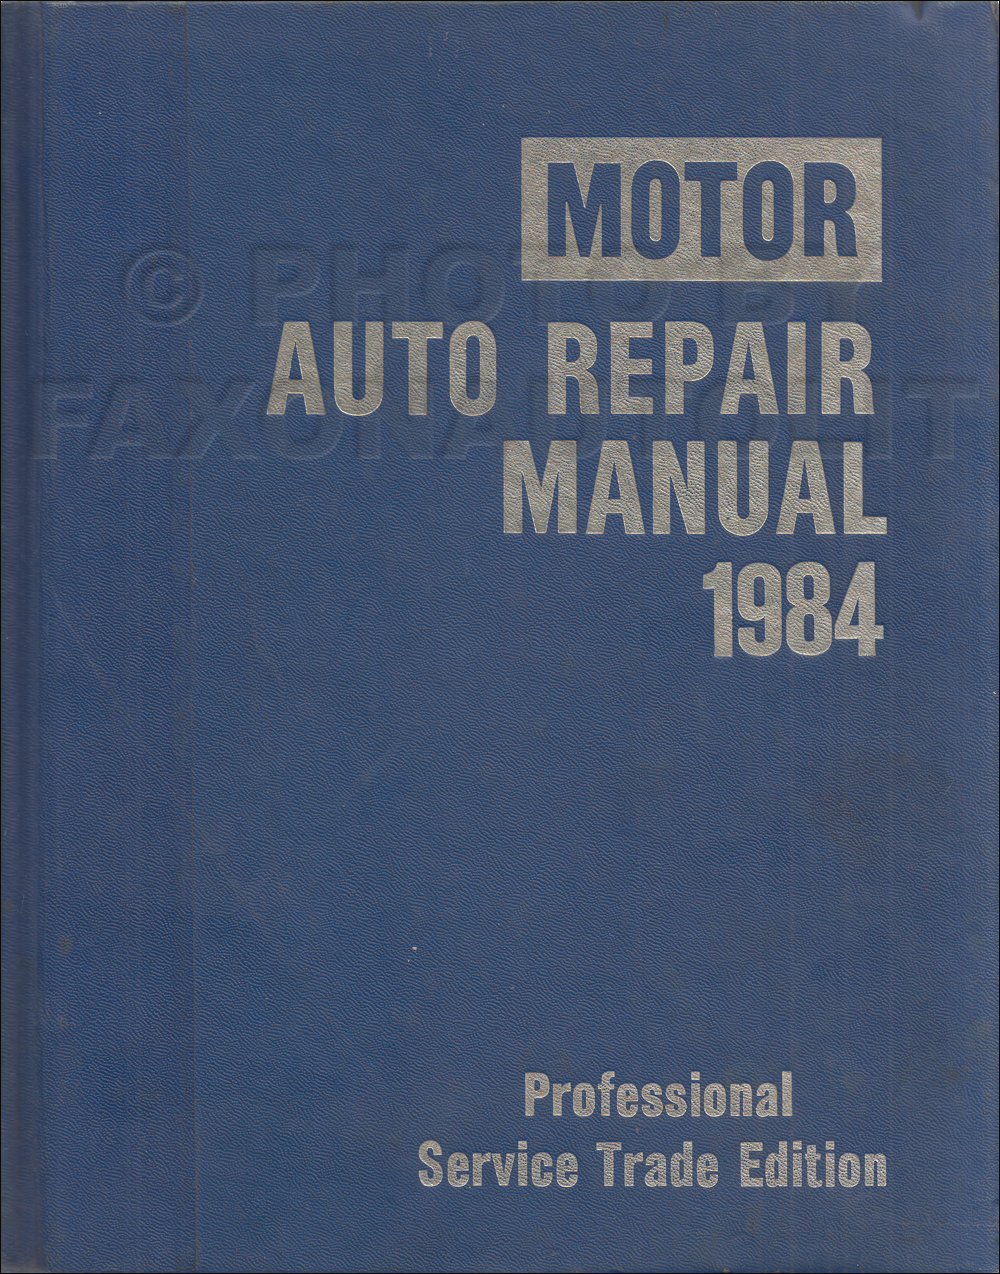 1977-1984 Motors US Car Shop Manual 47th Professional Service Trade Edition